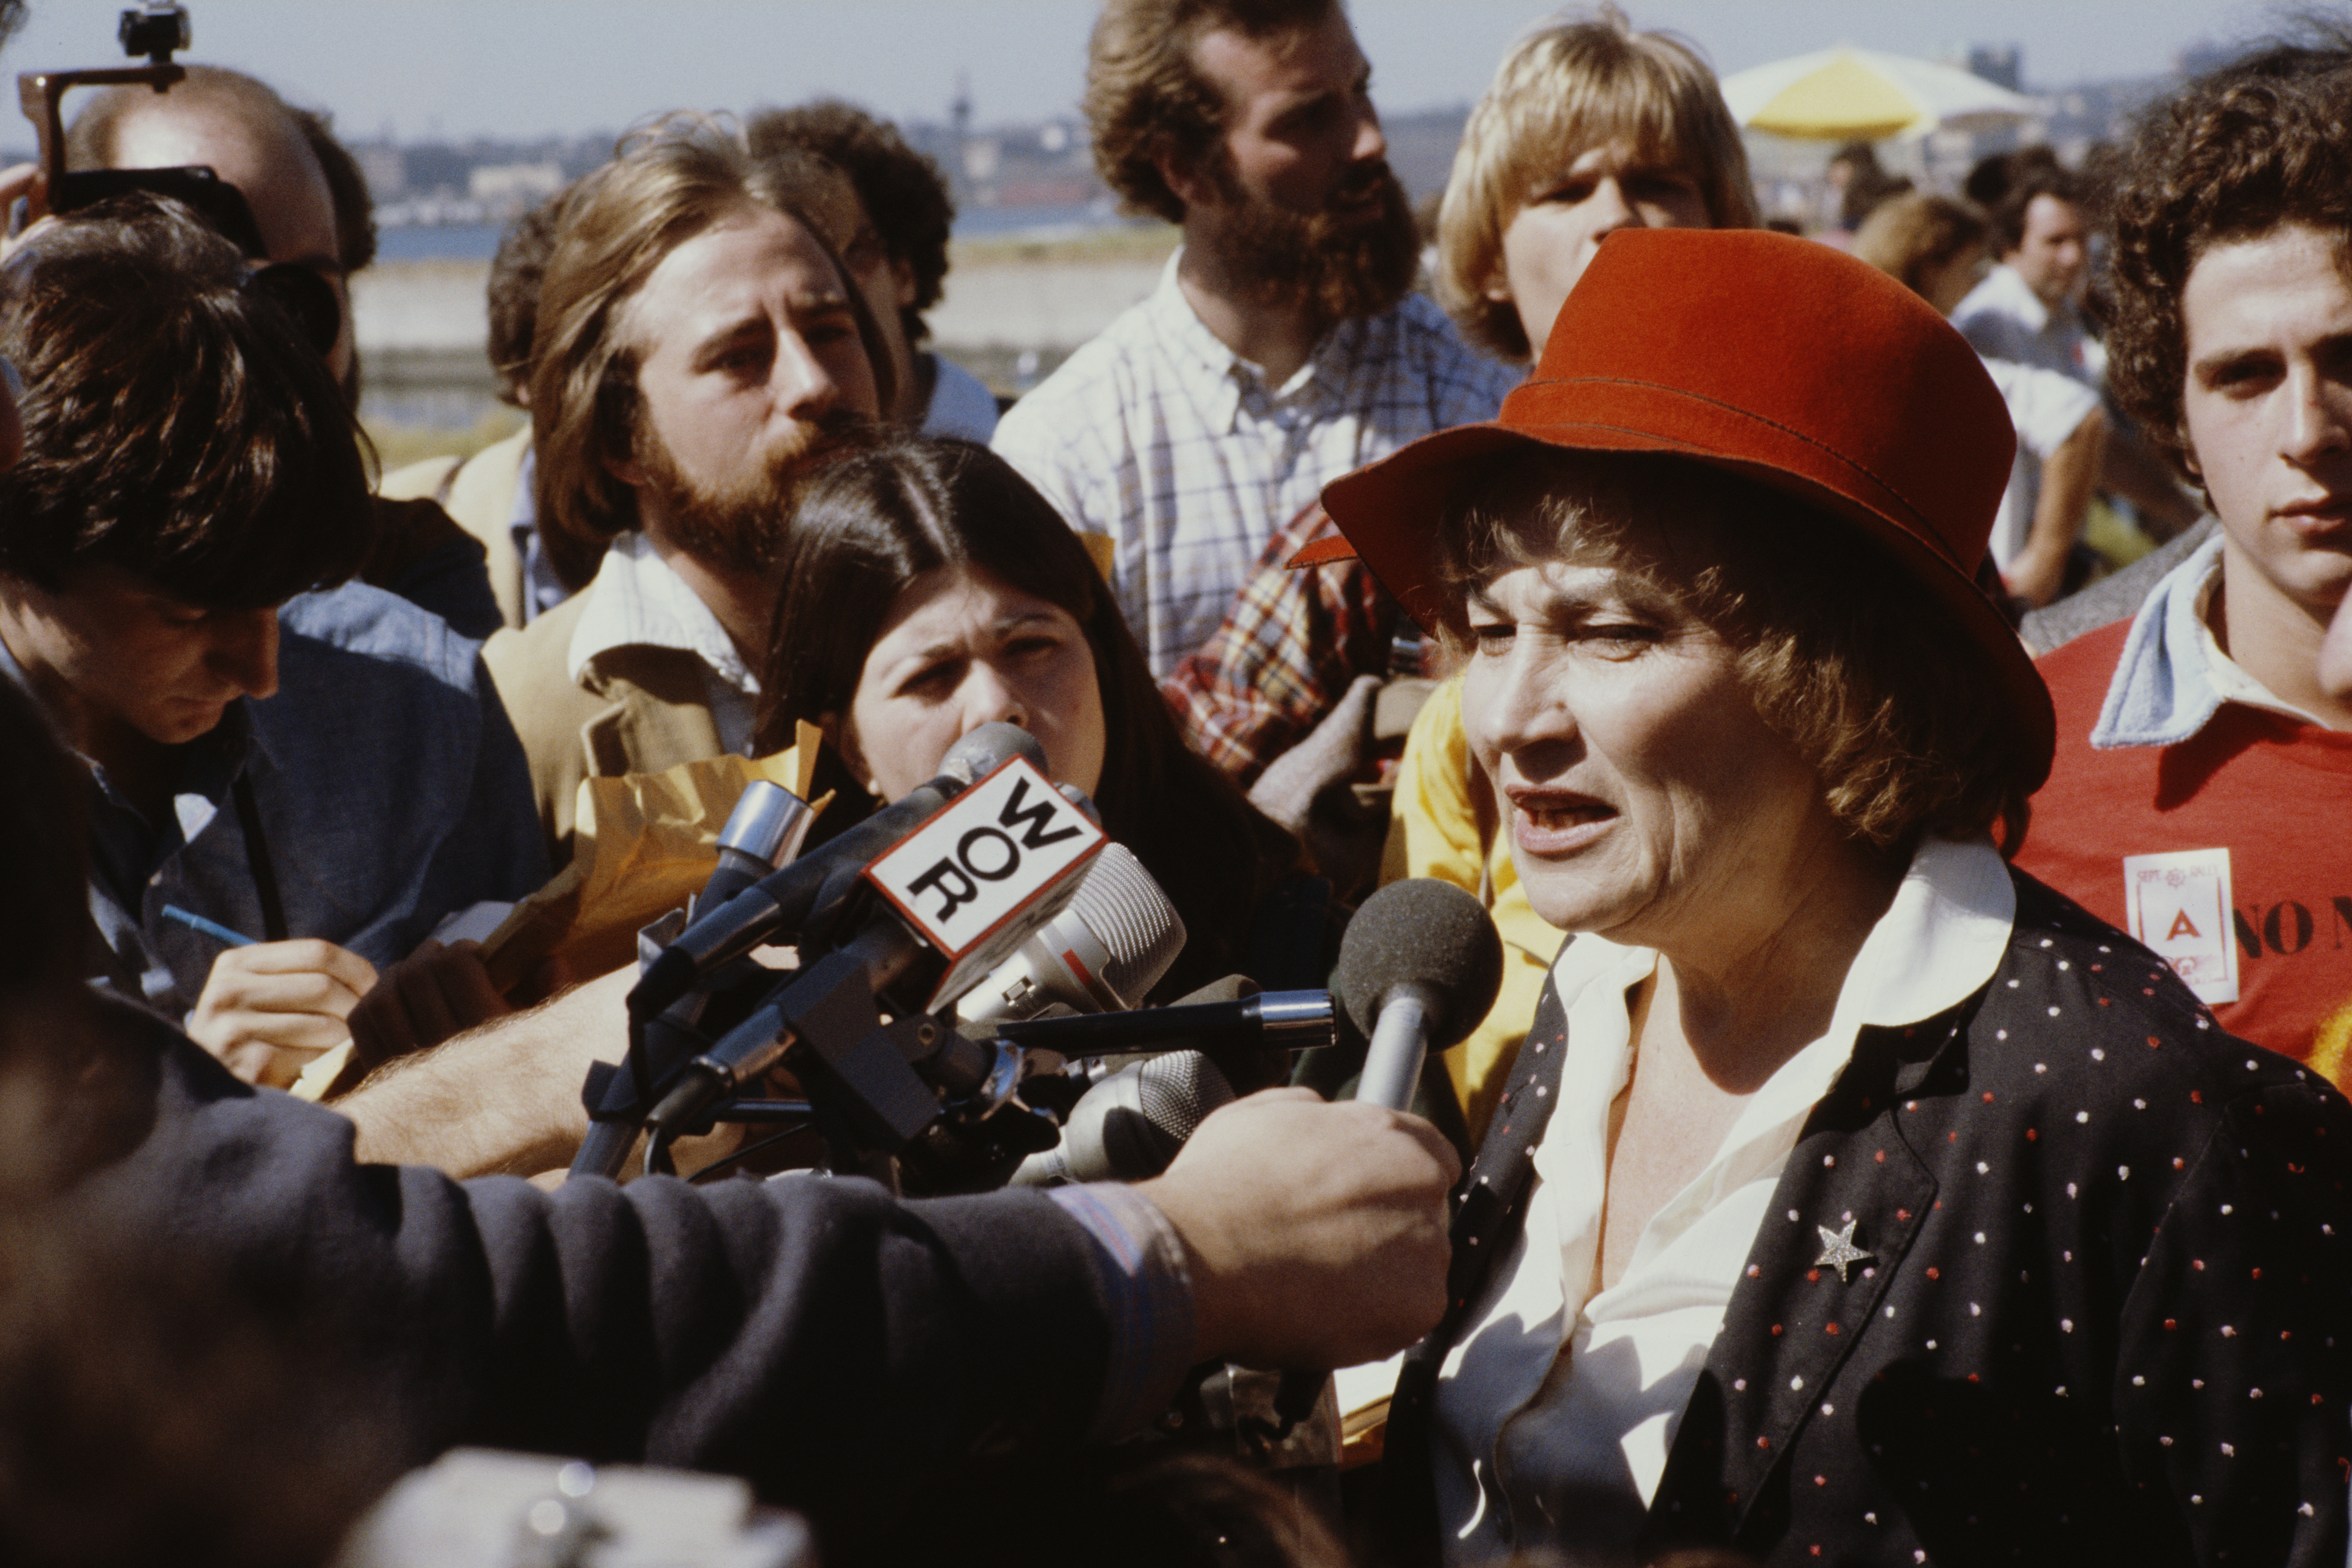 American congresswoman Bella Abzug (1920 - 1998) attends an anti-nuclear protest in New York City, 23rd September 1979.